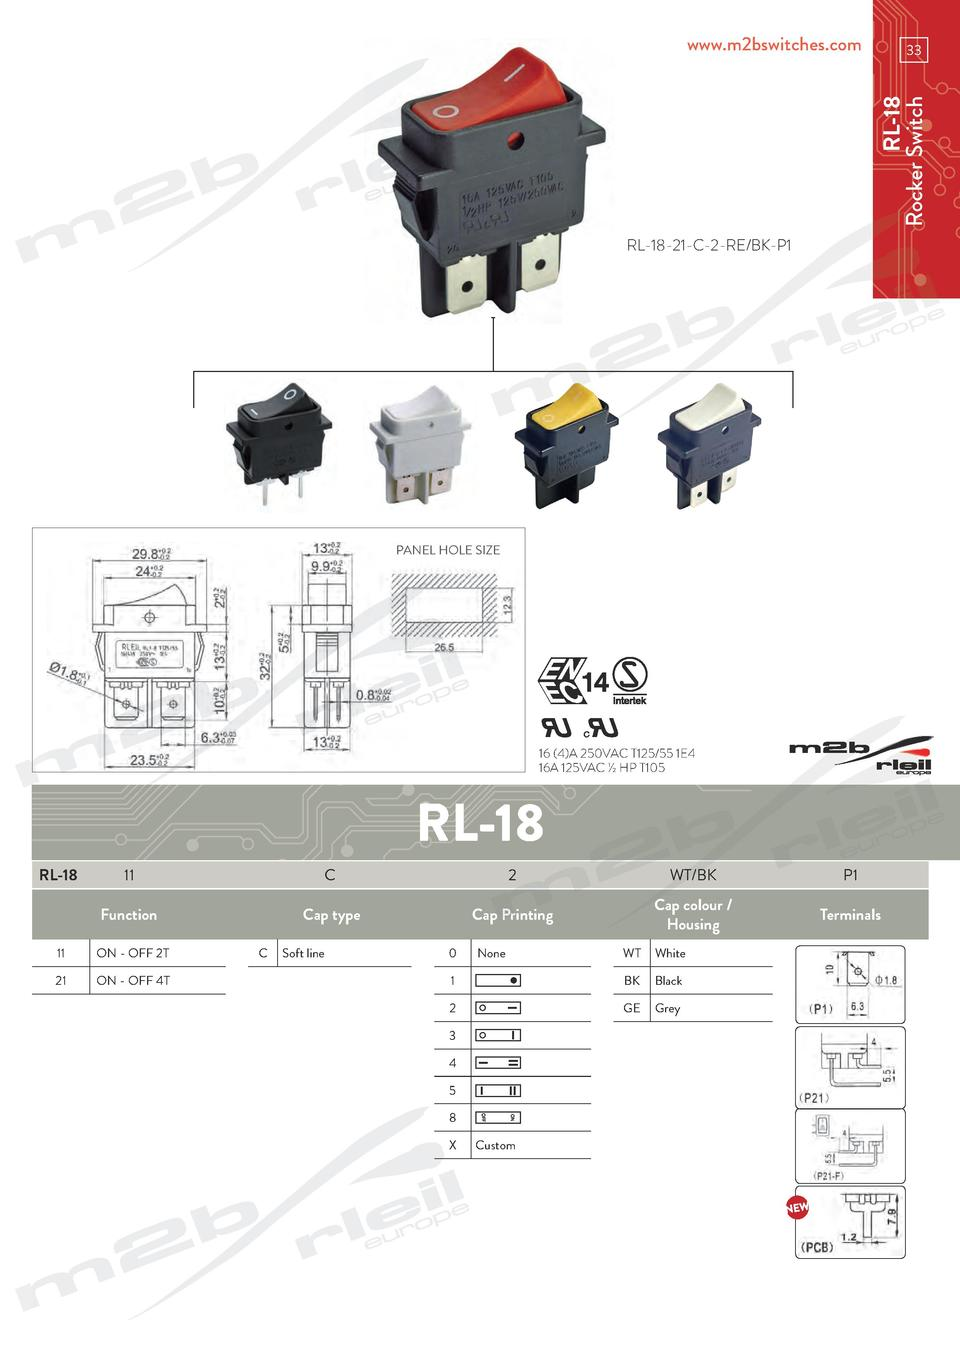 www.m2bswitches.com  RL-18 Rocker Switch  33  RL-18-21-C-2-RE BK-P1  PANEL HOLE SIZE  16  4 A 250VAC T125 55 1E4 16A 125VA...